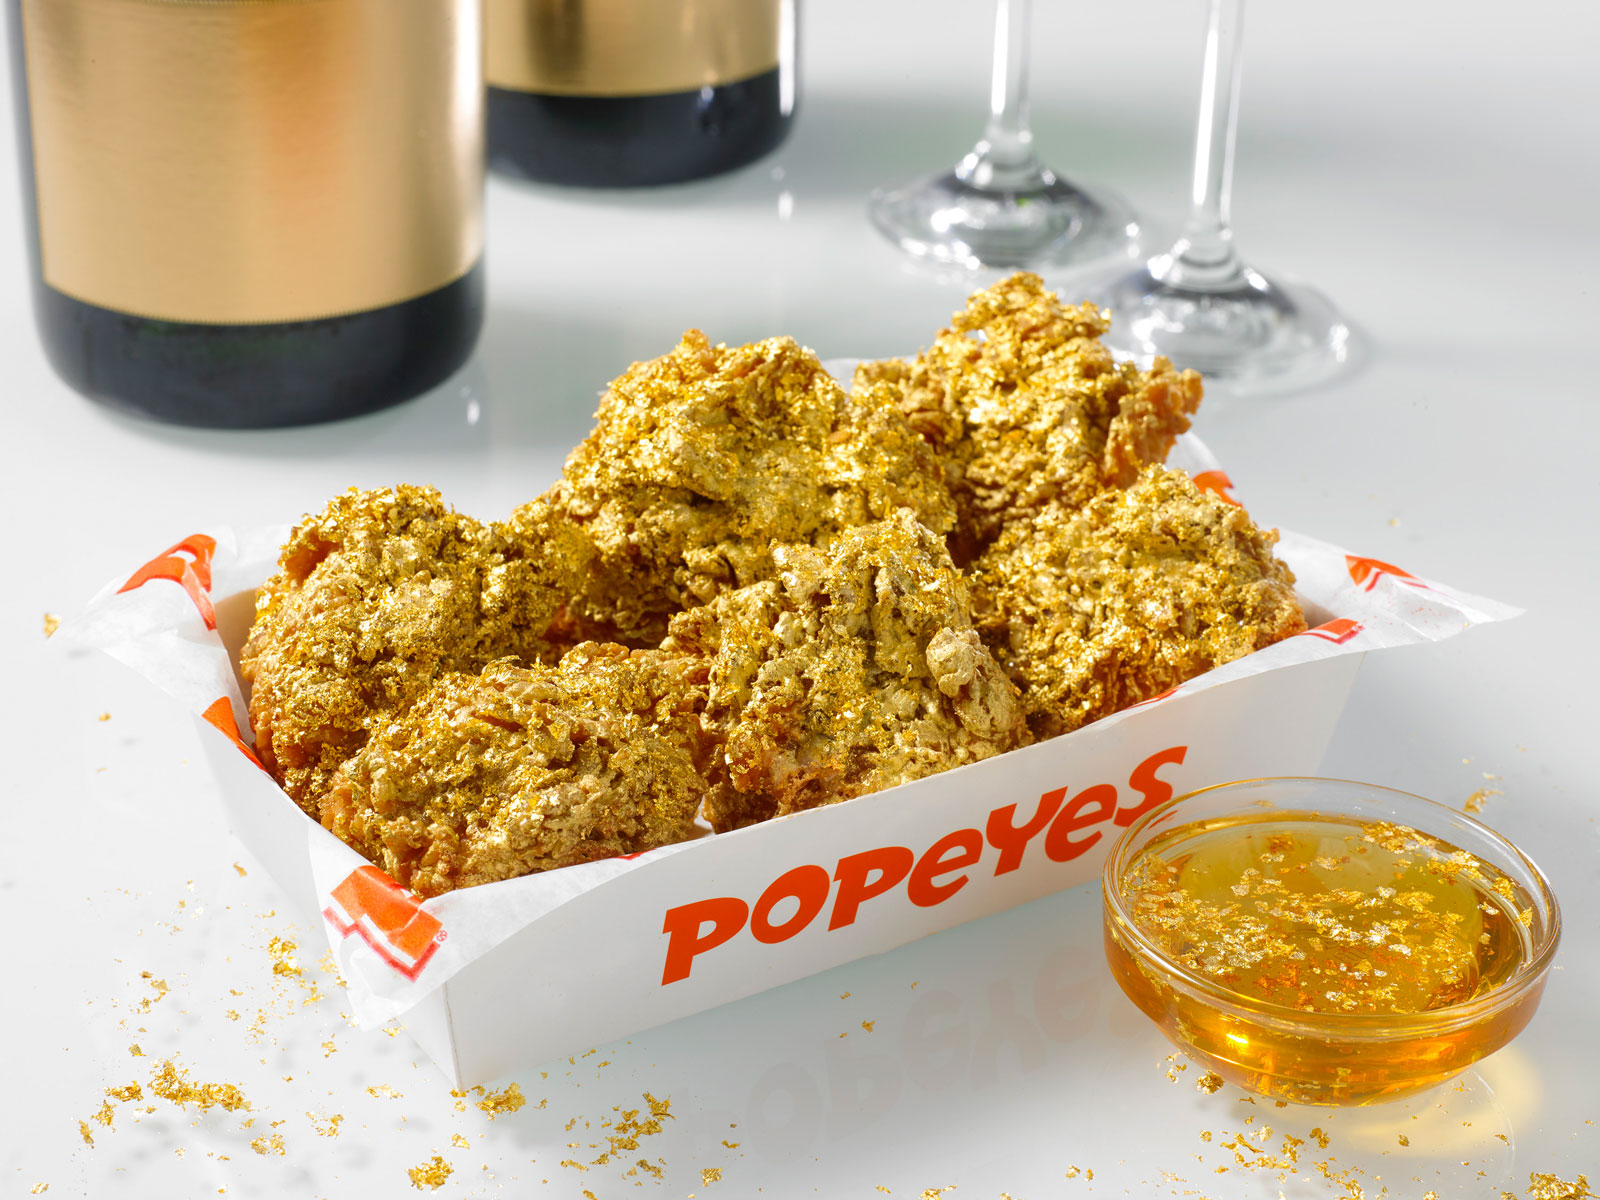 Popeyes today-only LTO coated in edible gold